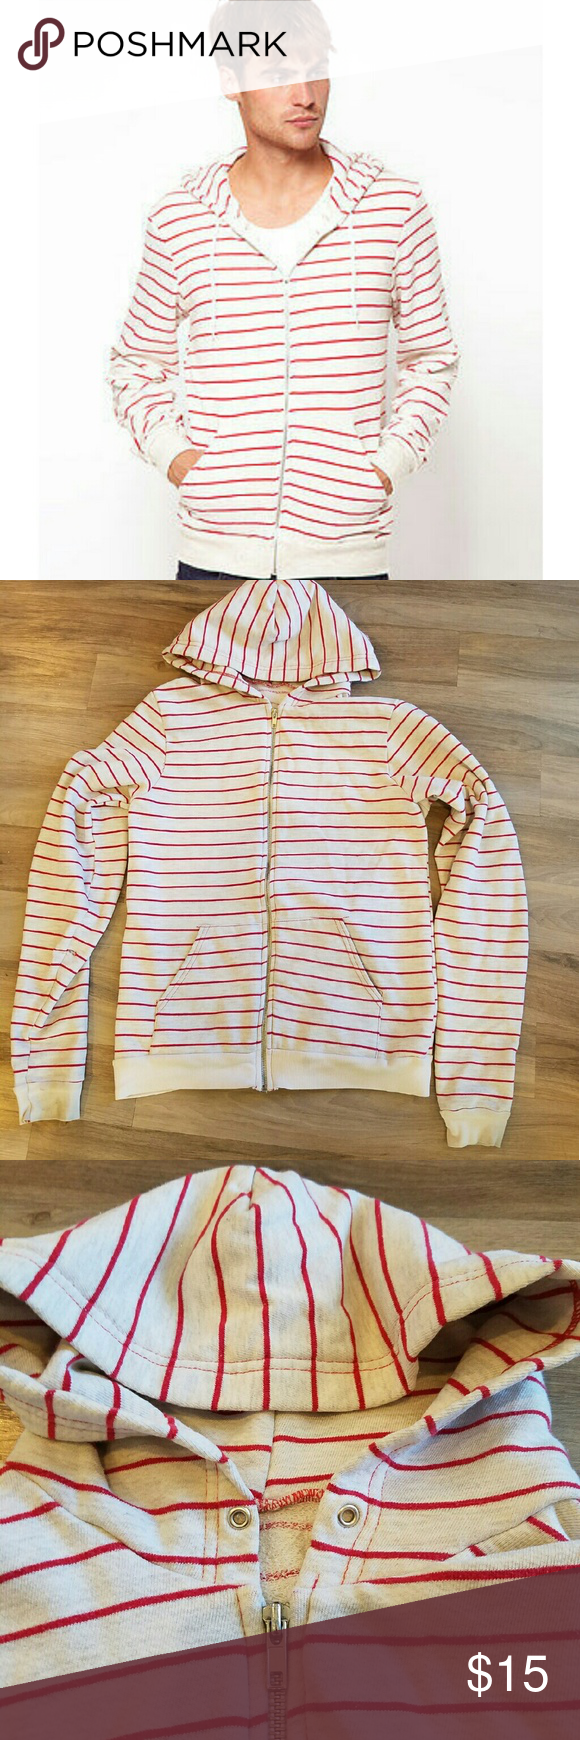 American Apparel white and red striped hoodie This unisex American Apparel hoodie is one of their most staple hoodies. It no longer has a drawstring and has a small tear in right arm sleeve. American Apparel Sweaters